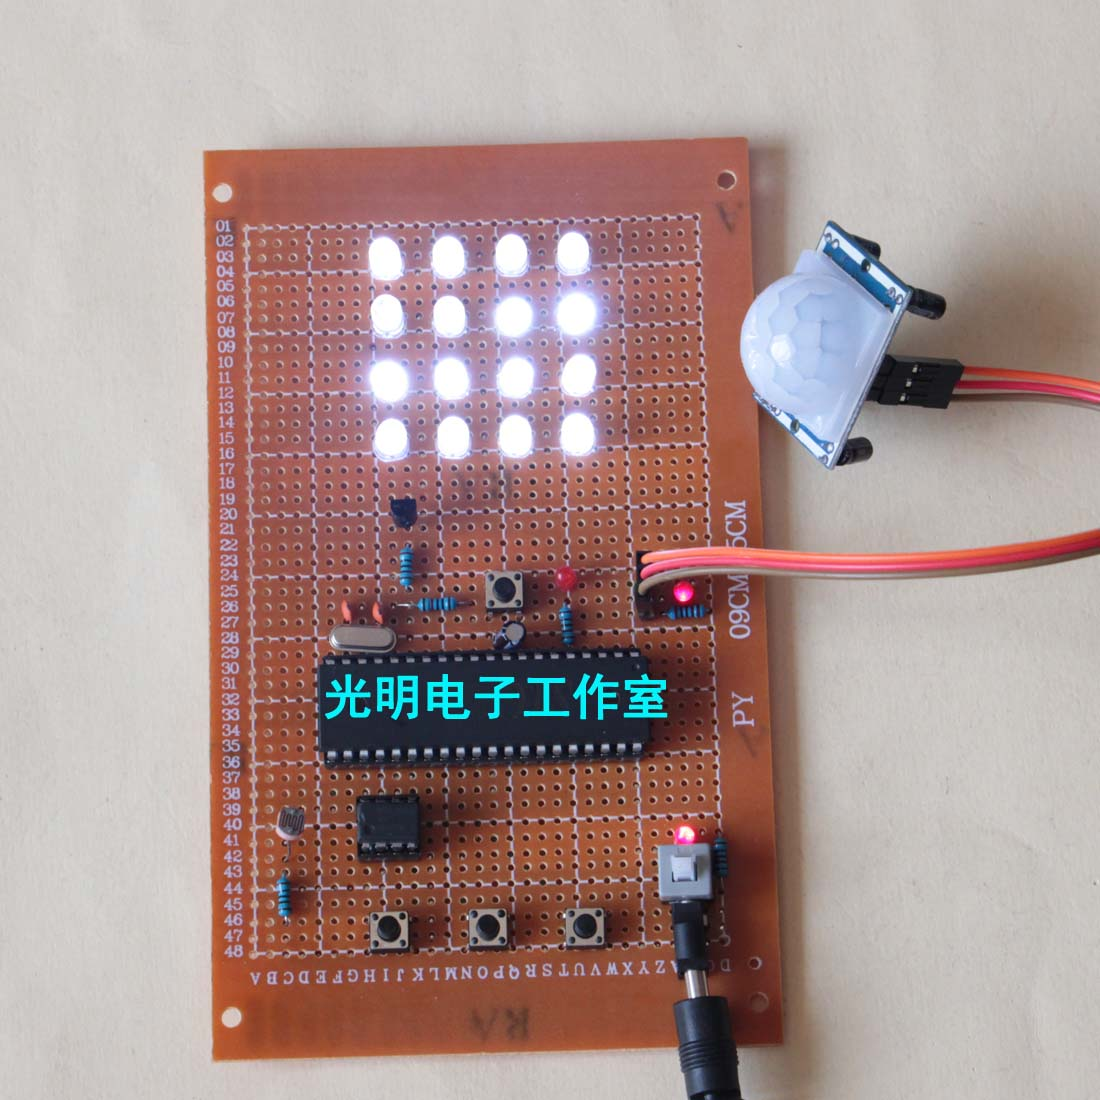 Design of Infrared Induction Light Control Lighting Based on 51 Single Chip Microcomputer Intelligent Dimming Table Lamp